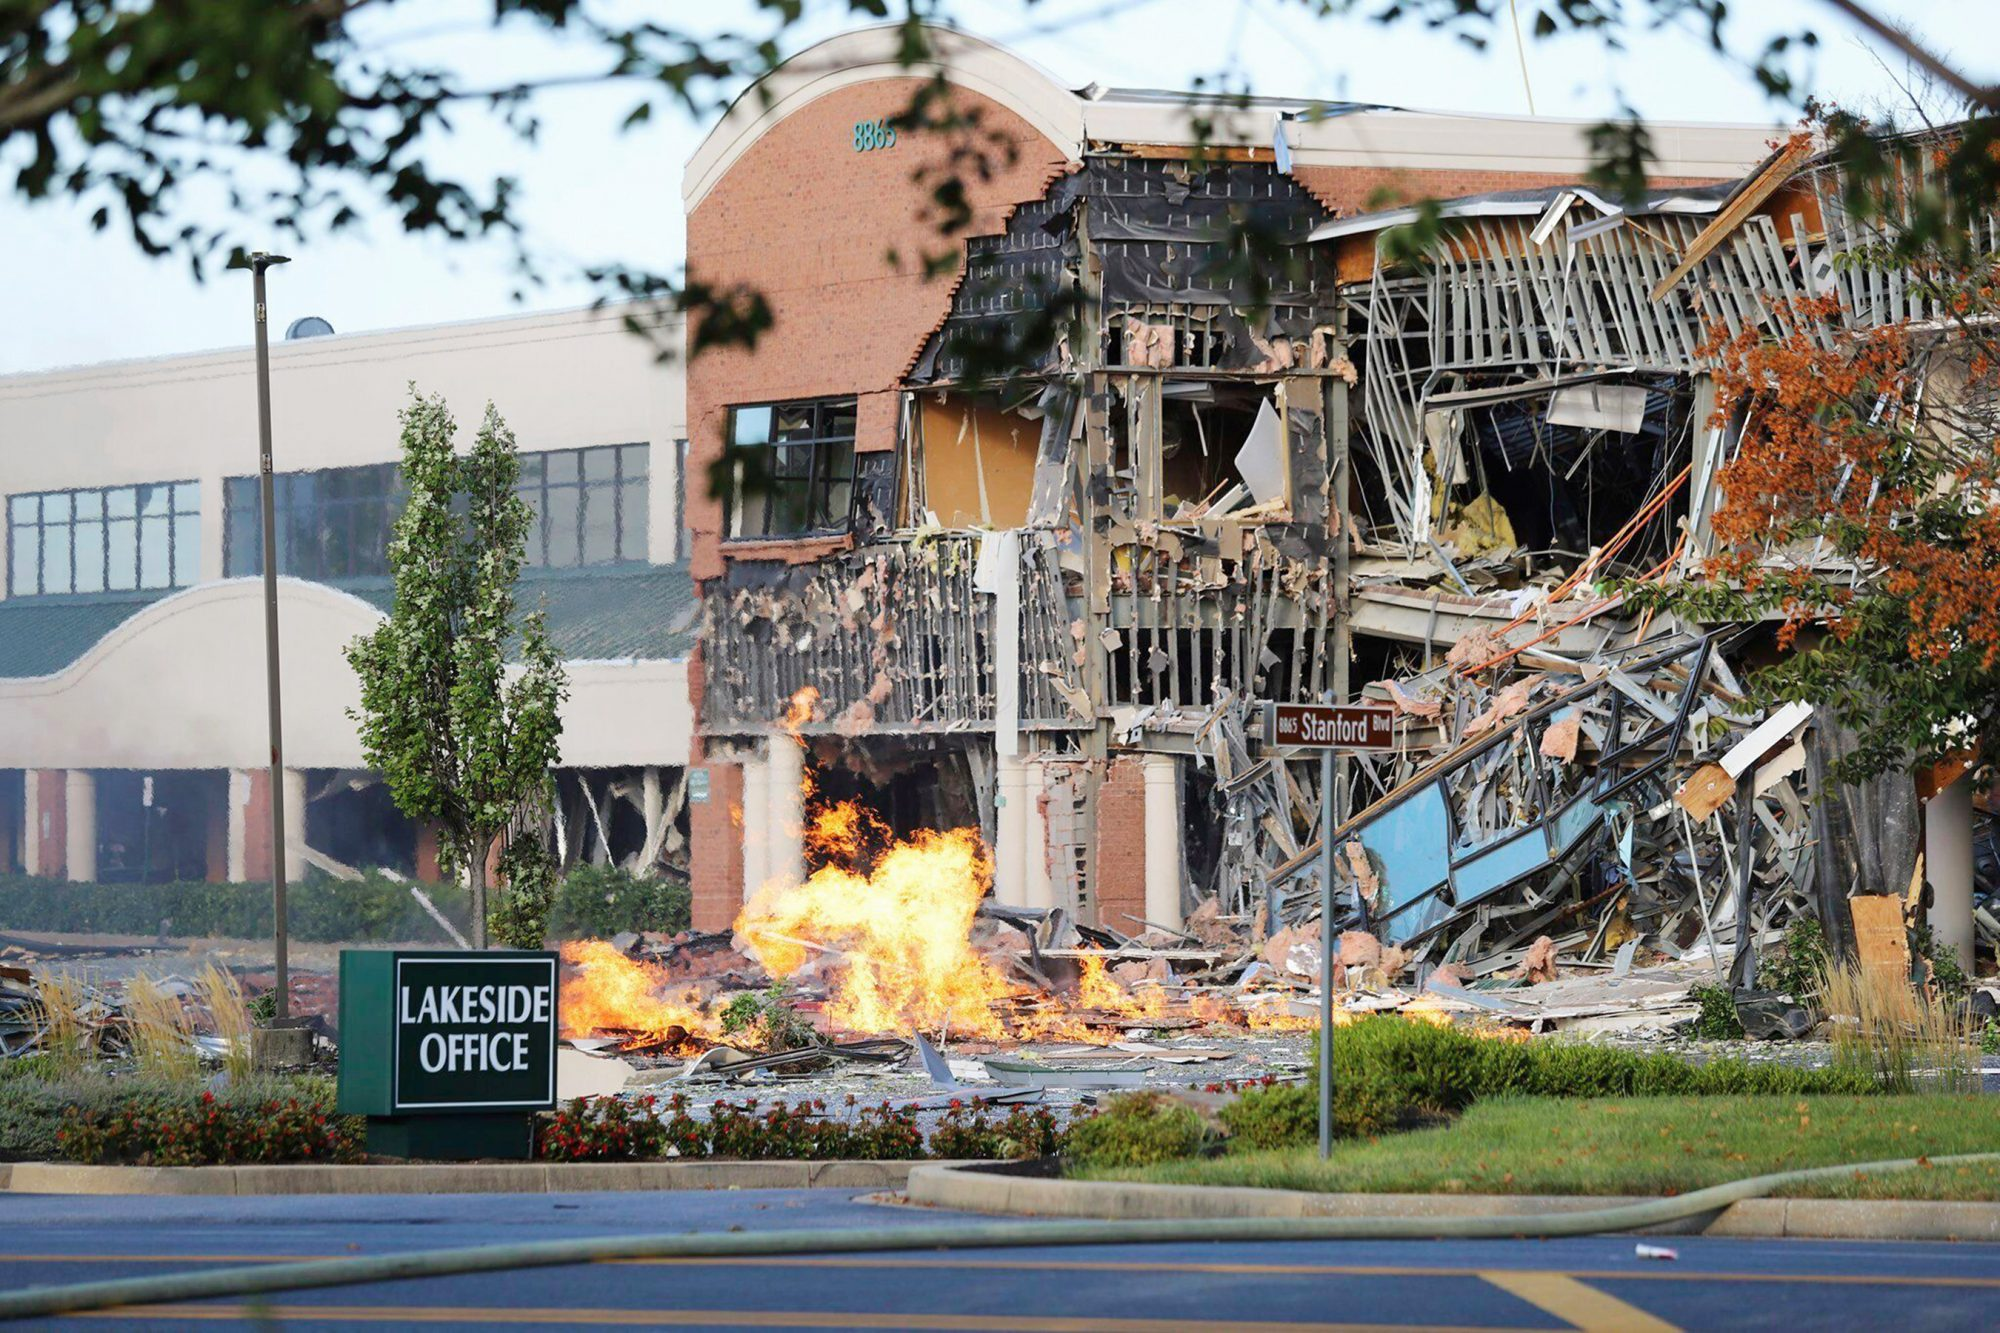 This photo provided by the Howard County Fire And Rescue shows the scene of a damaged building and burning debris nearby after an explosion at an office complex and shopping center in Columbia, Md Gas Explosion Maryland, Columbia, USA - 25 Aug 2019